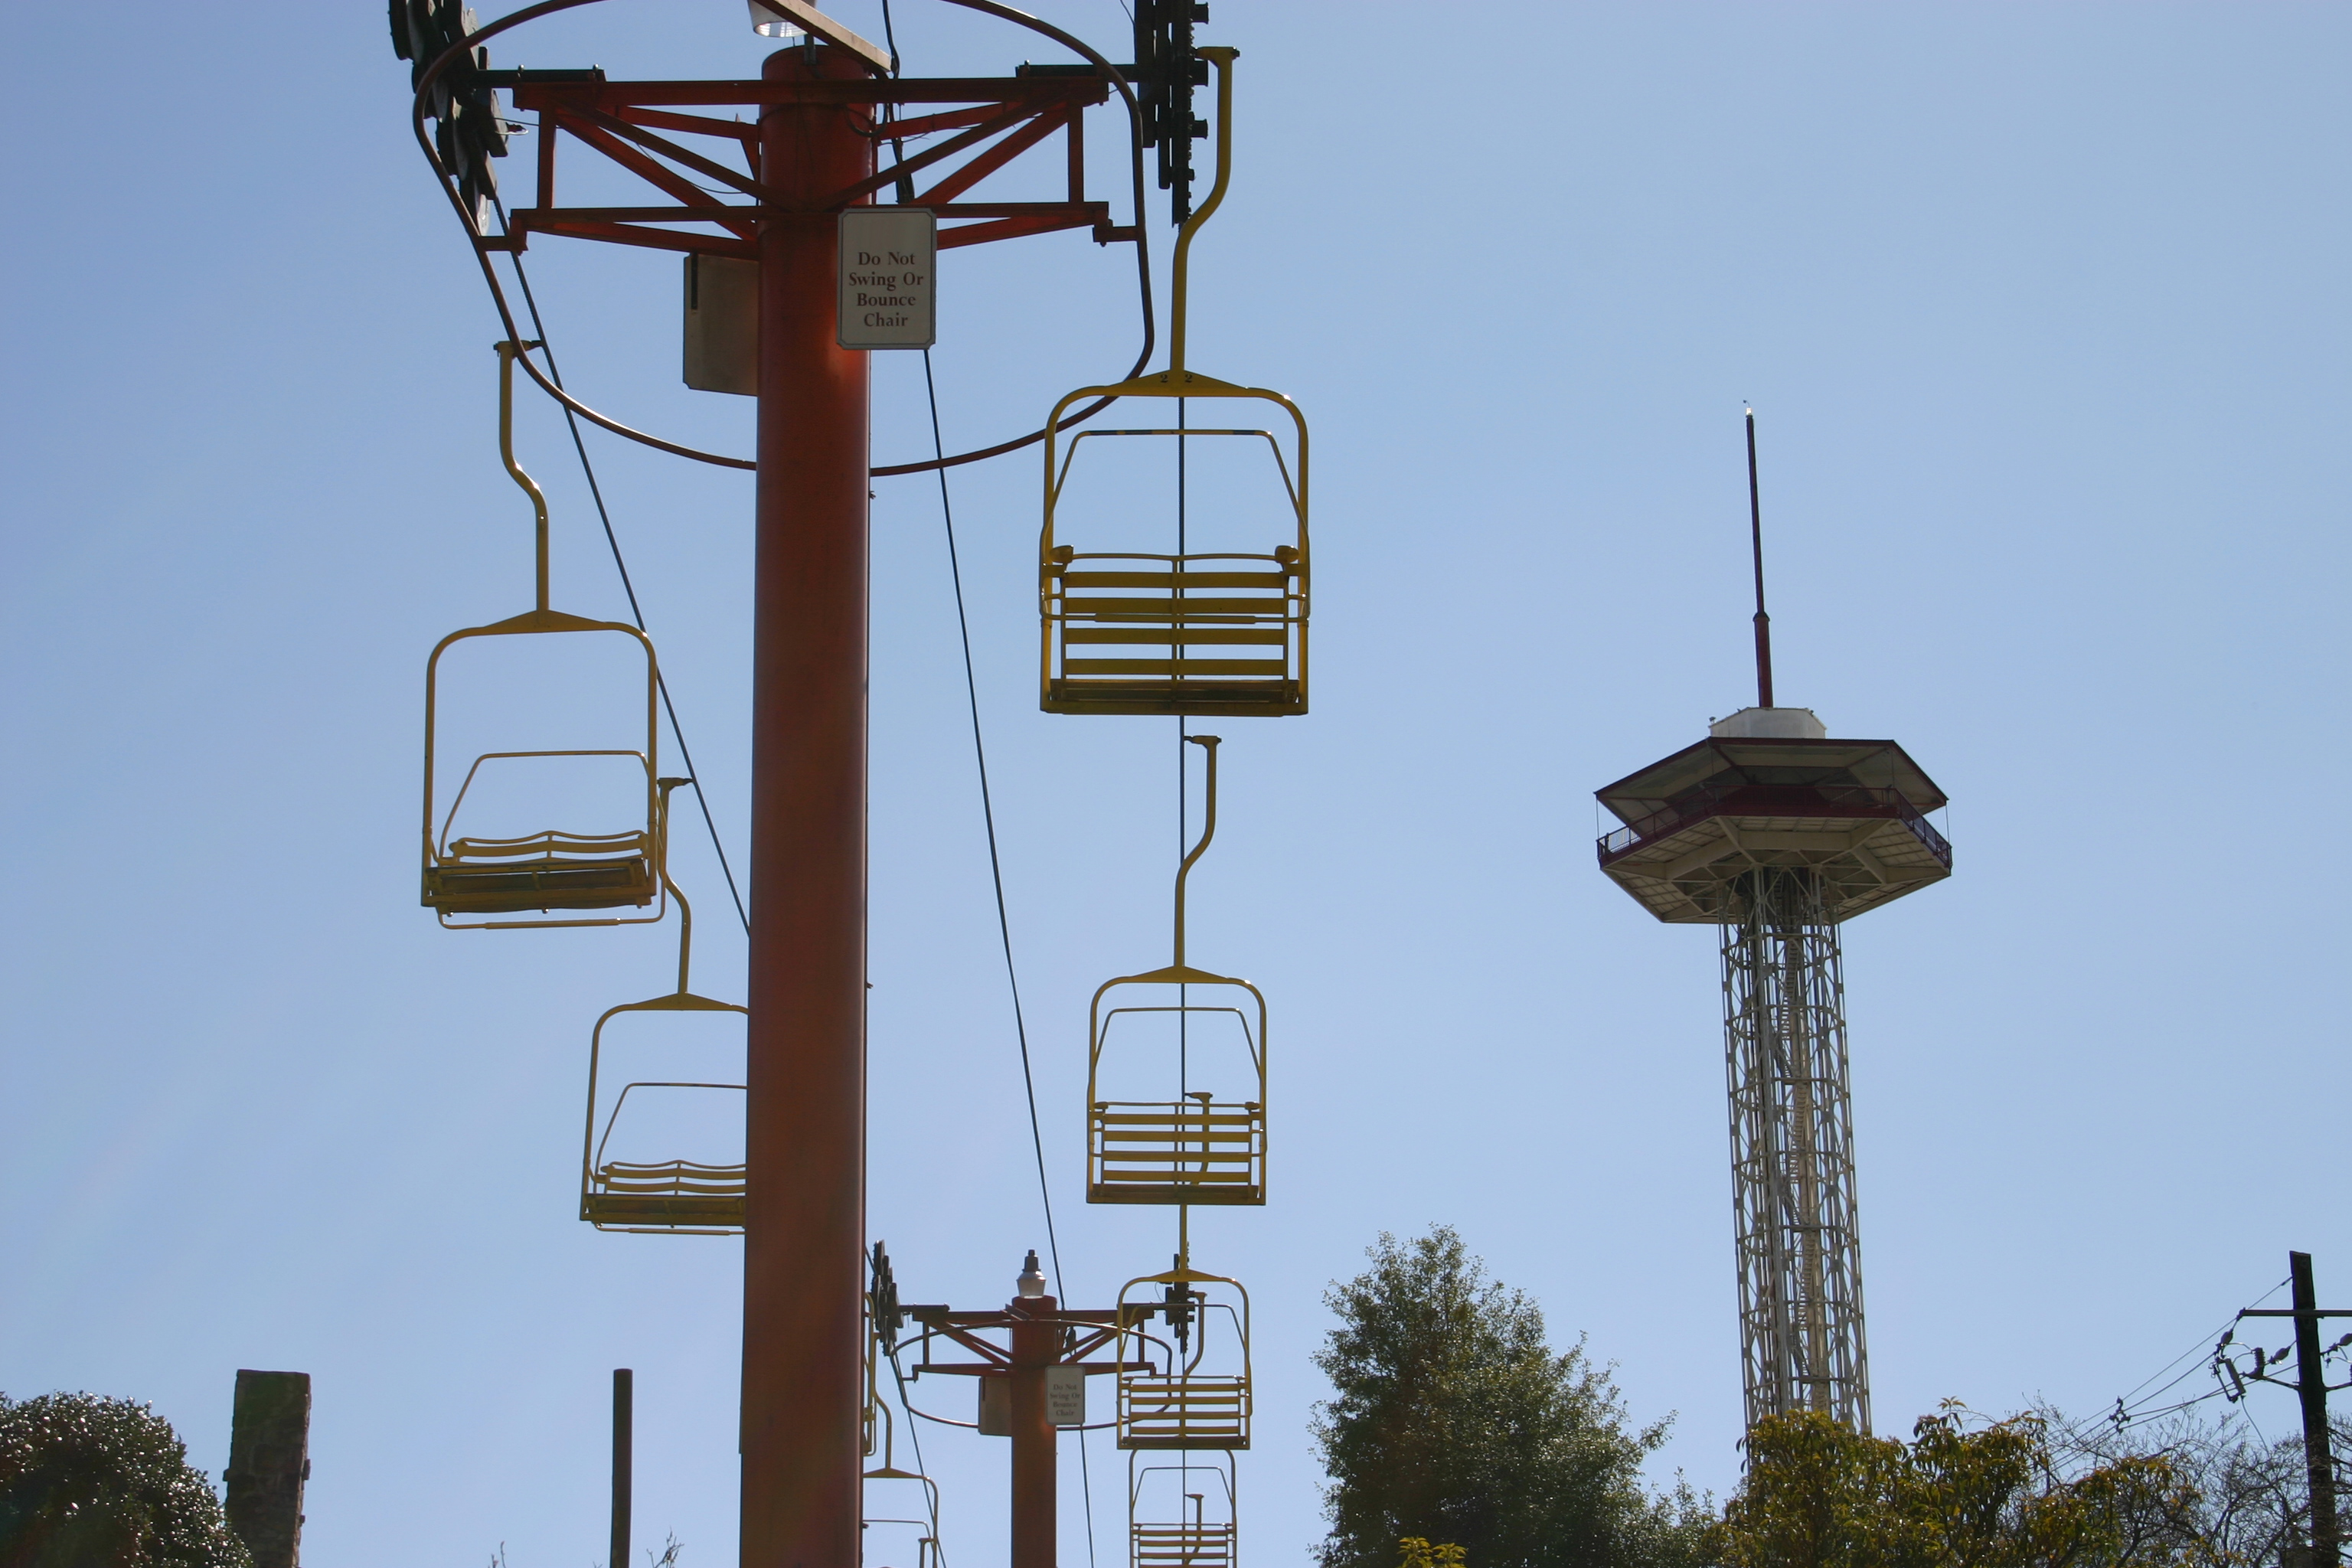 Chairlifts with tall tower in background.